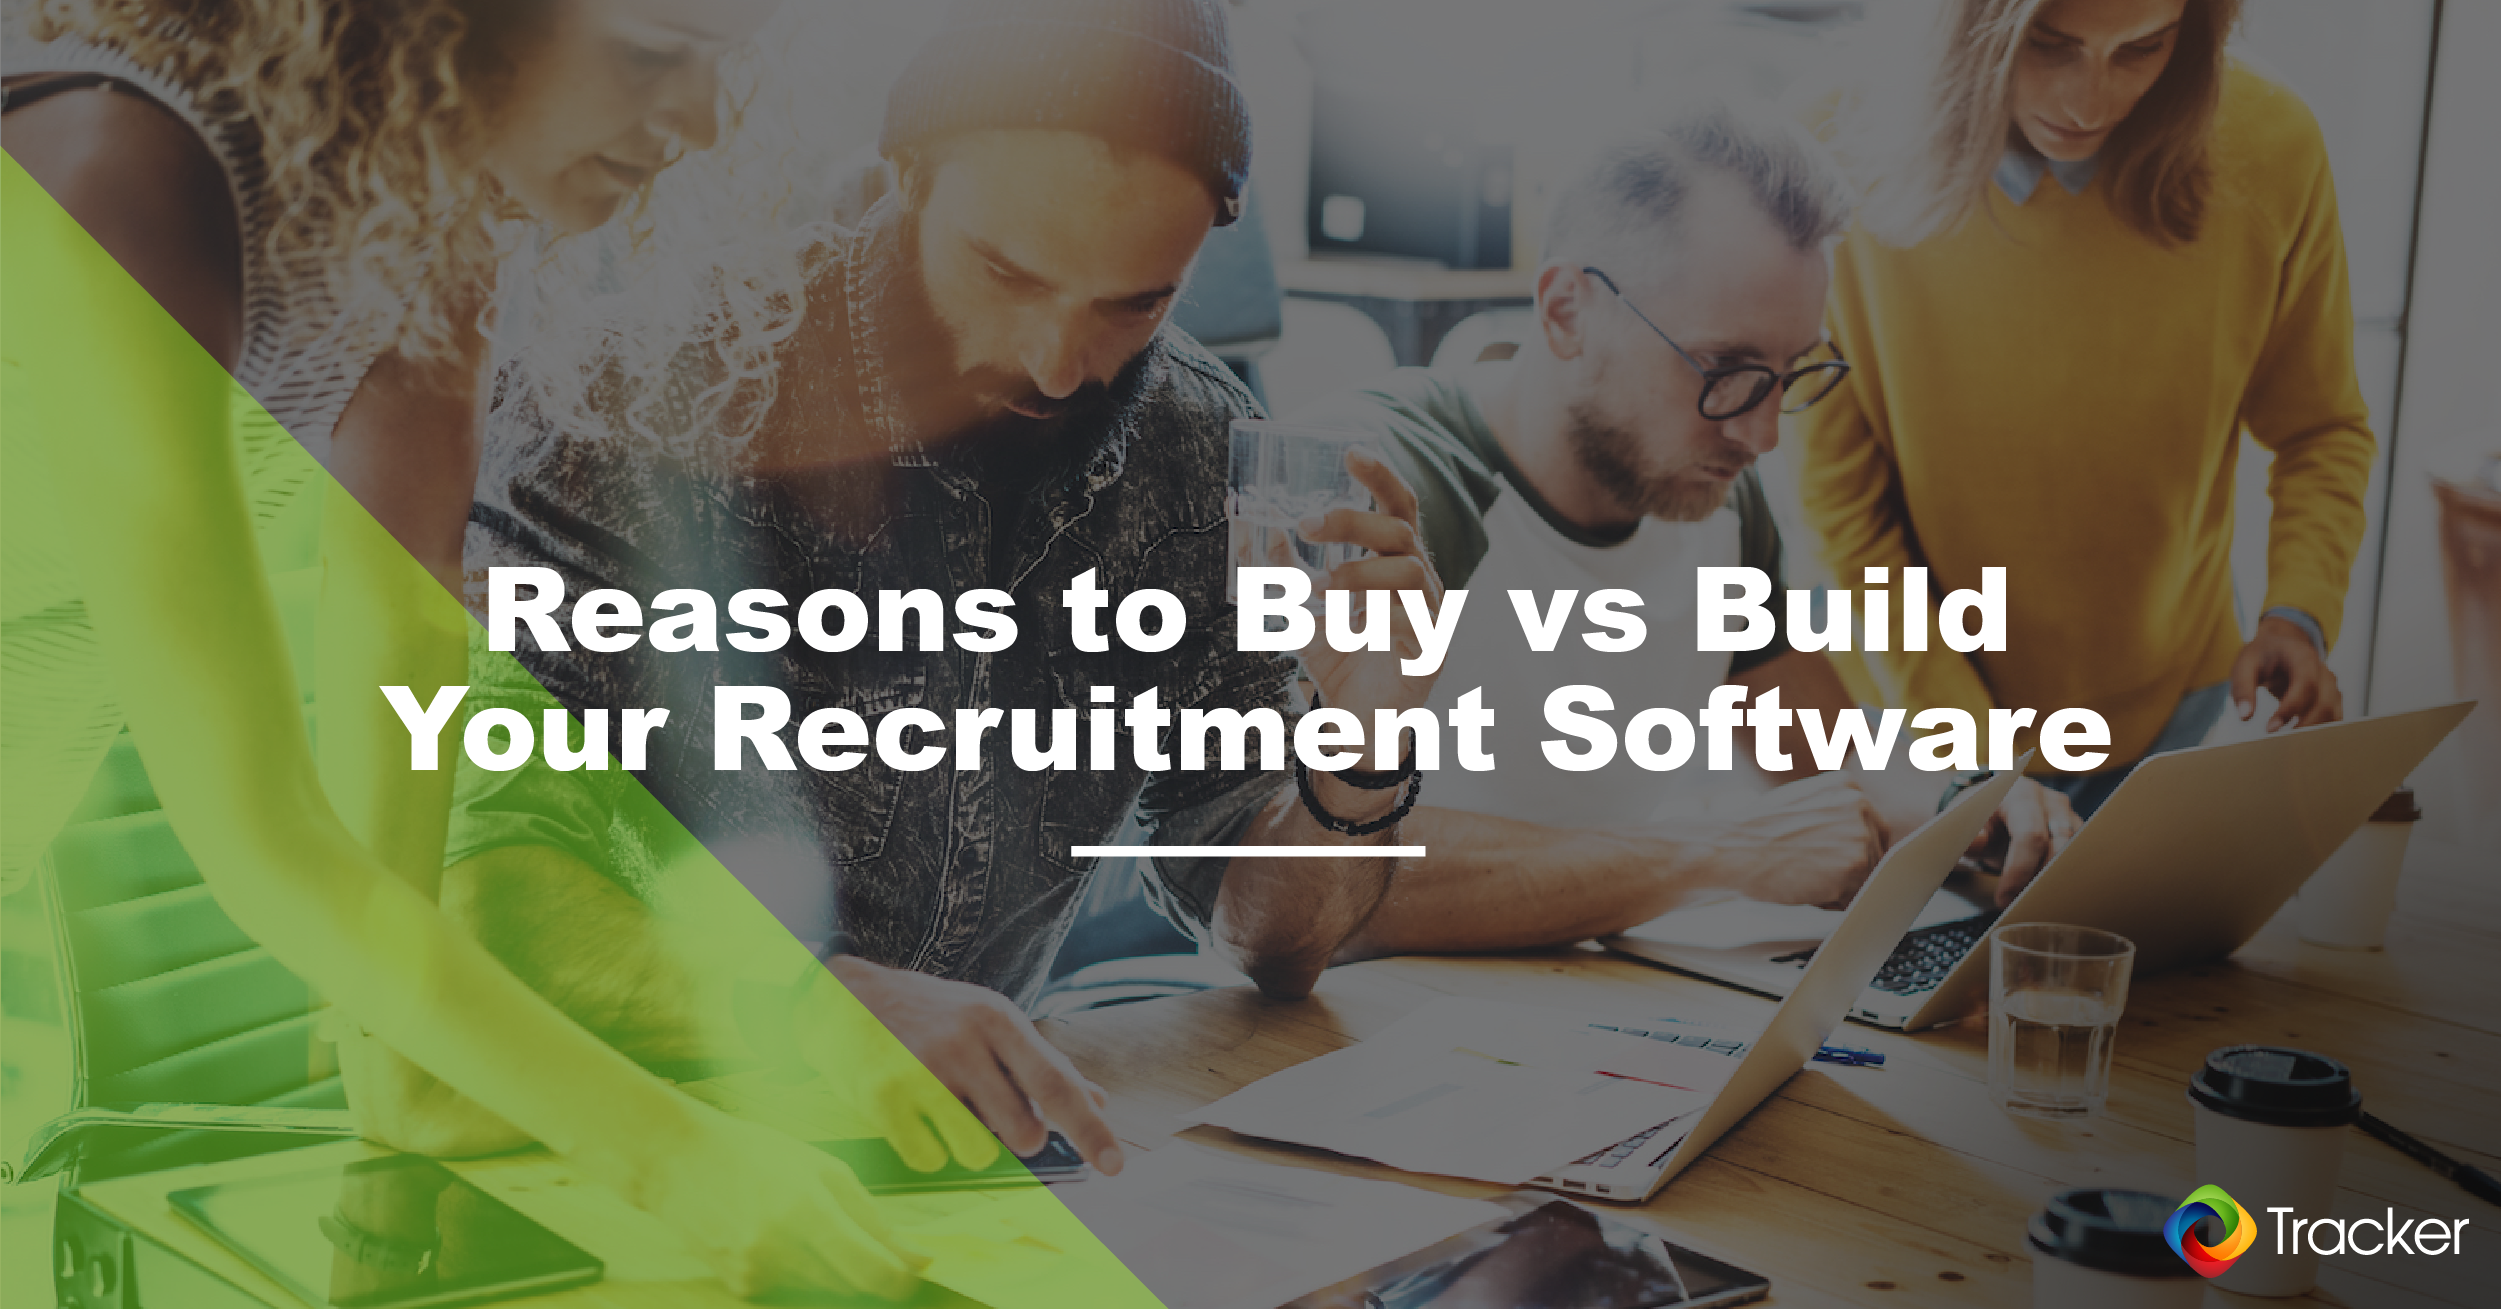 Buy vs Build Recruitment Software